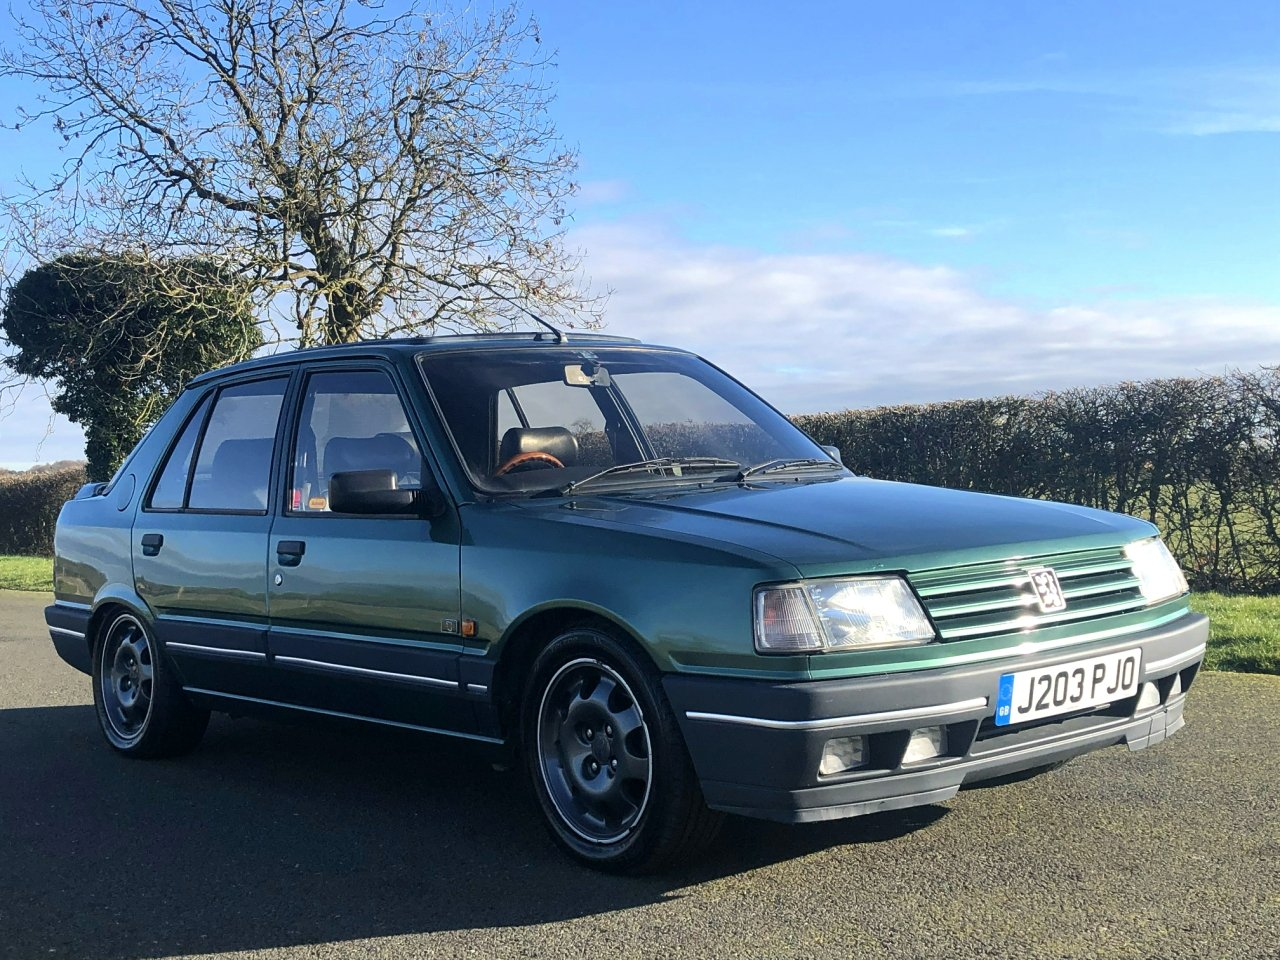 1992 Peugeot 309 GTI Goodwood Limited Edition SOLD (picture 3 of 6)